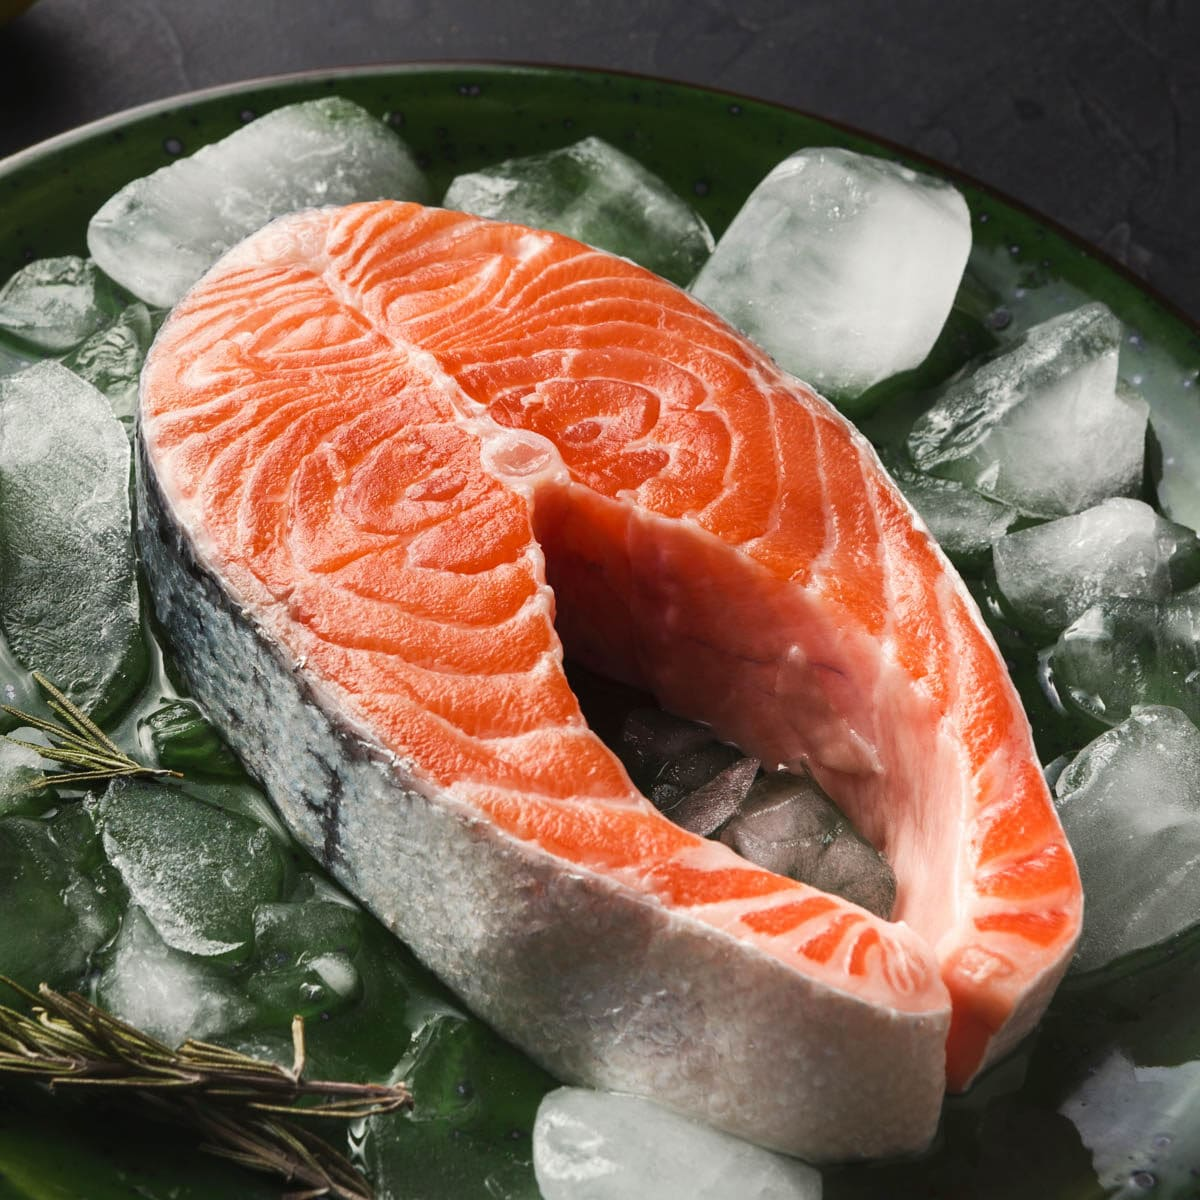 Raw salmon steak on a plate with ice